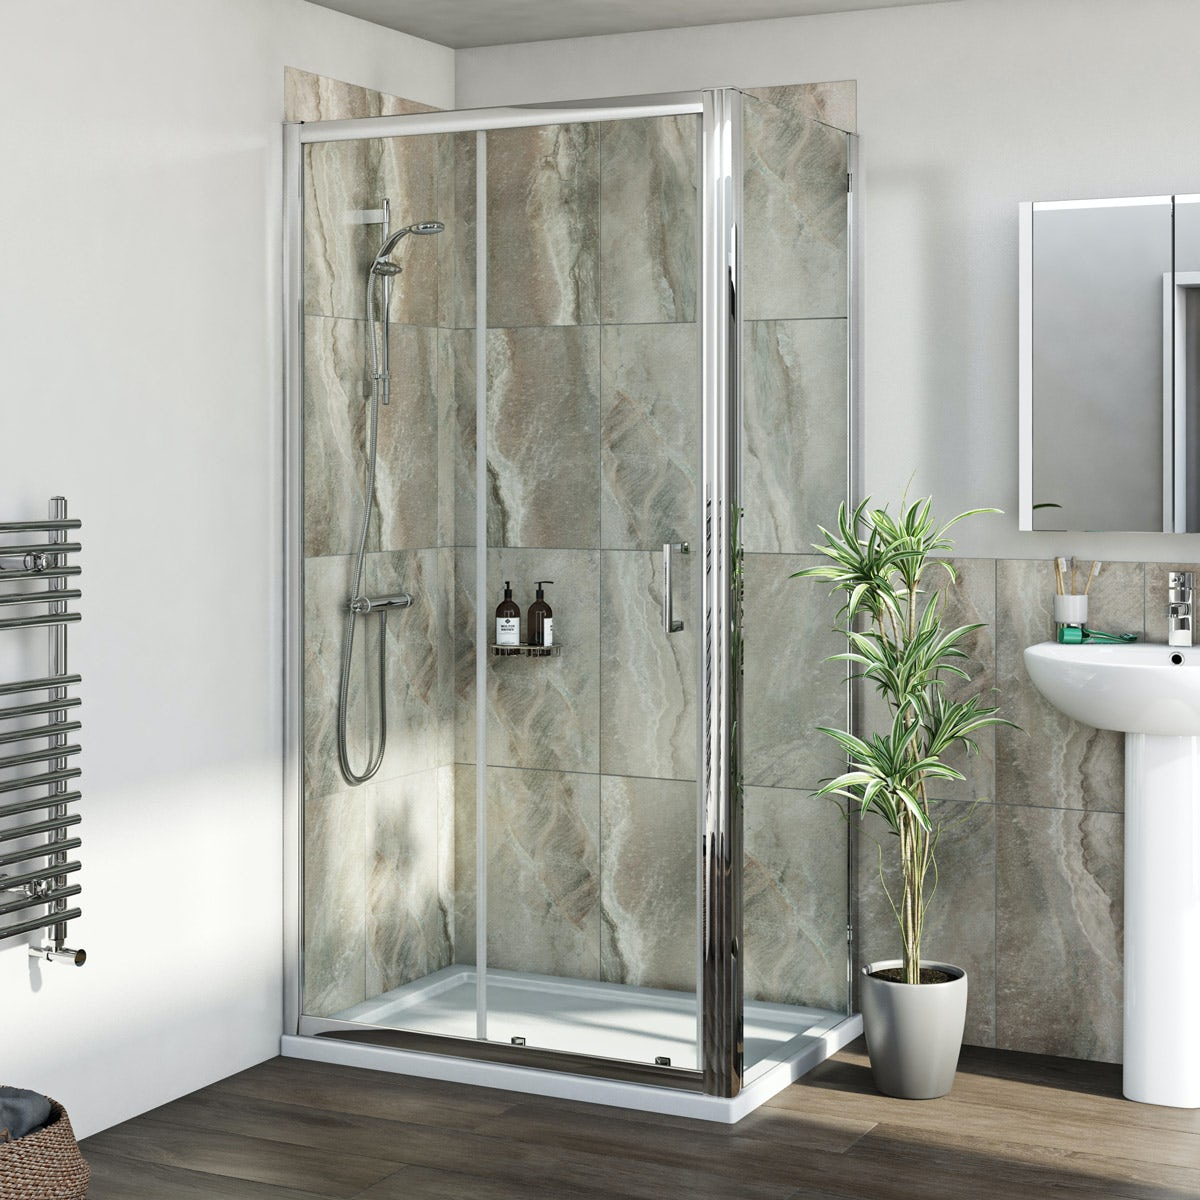 Mira Coda EV shower system and 6mm sliding door with stone shower tray and waste 1000 x 700